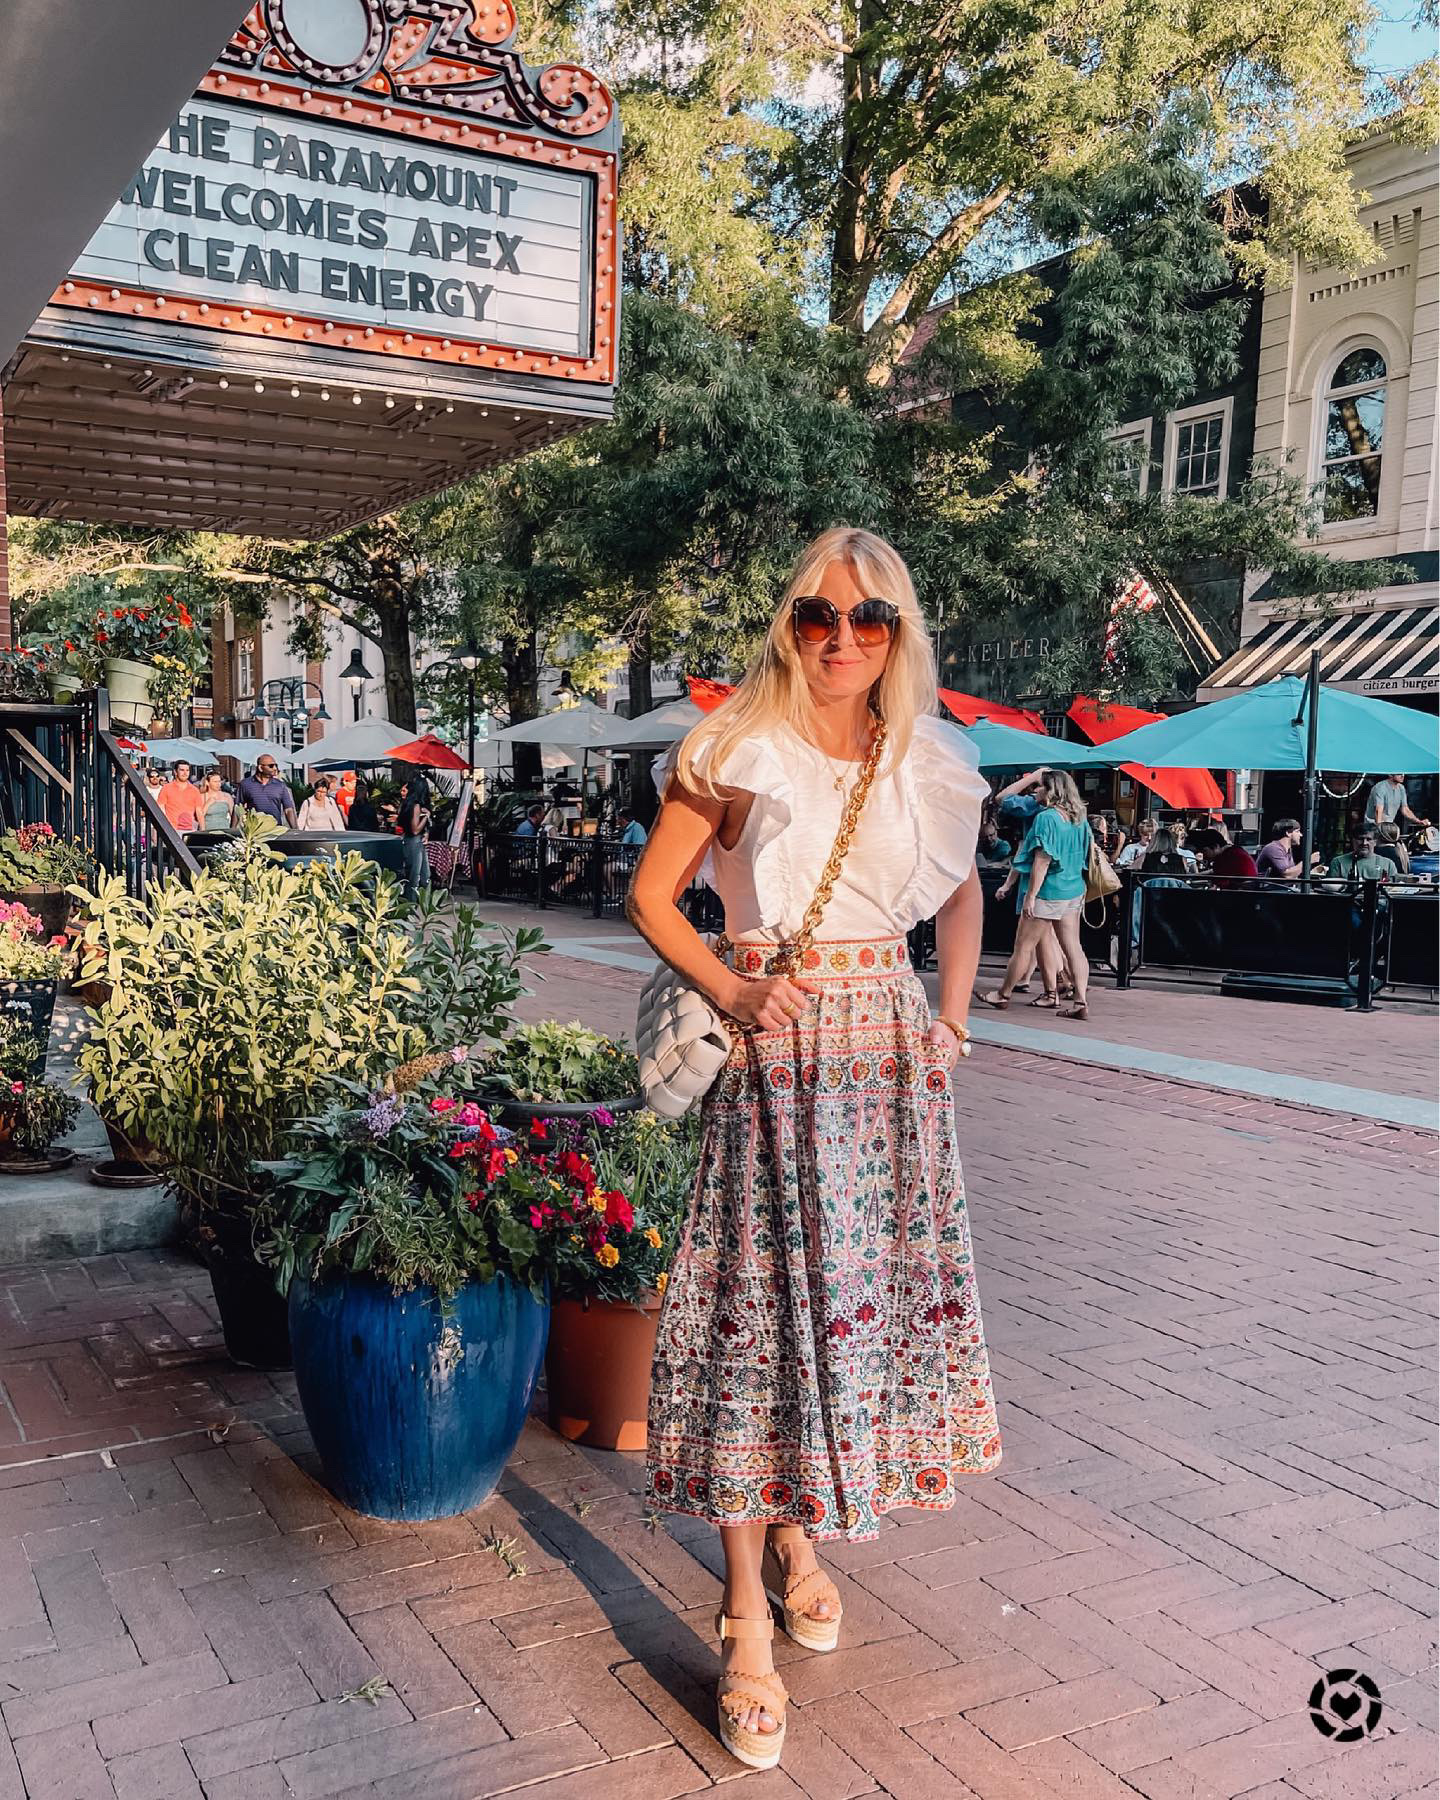 where to stop on a cross-country road trip, best places to stop on a cross country road trip, cross country road trip, west coast to east coast road trip, erin busbee, traveling with kids, how to travel with kids, how to travel with a dog, cross country road trip with kids, charlottesville virginia, alice + olivia embroidered midi skirt, see by chloe wedges, nation ltd ruffle sleeve top, bottega veneta chain cassette bag, salvatore ferragamo sunglasses